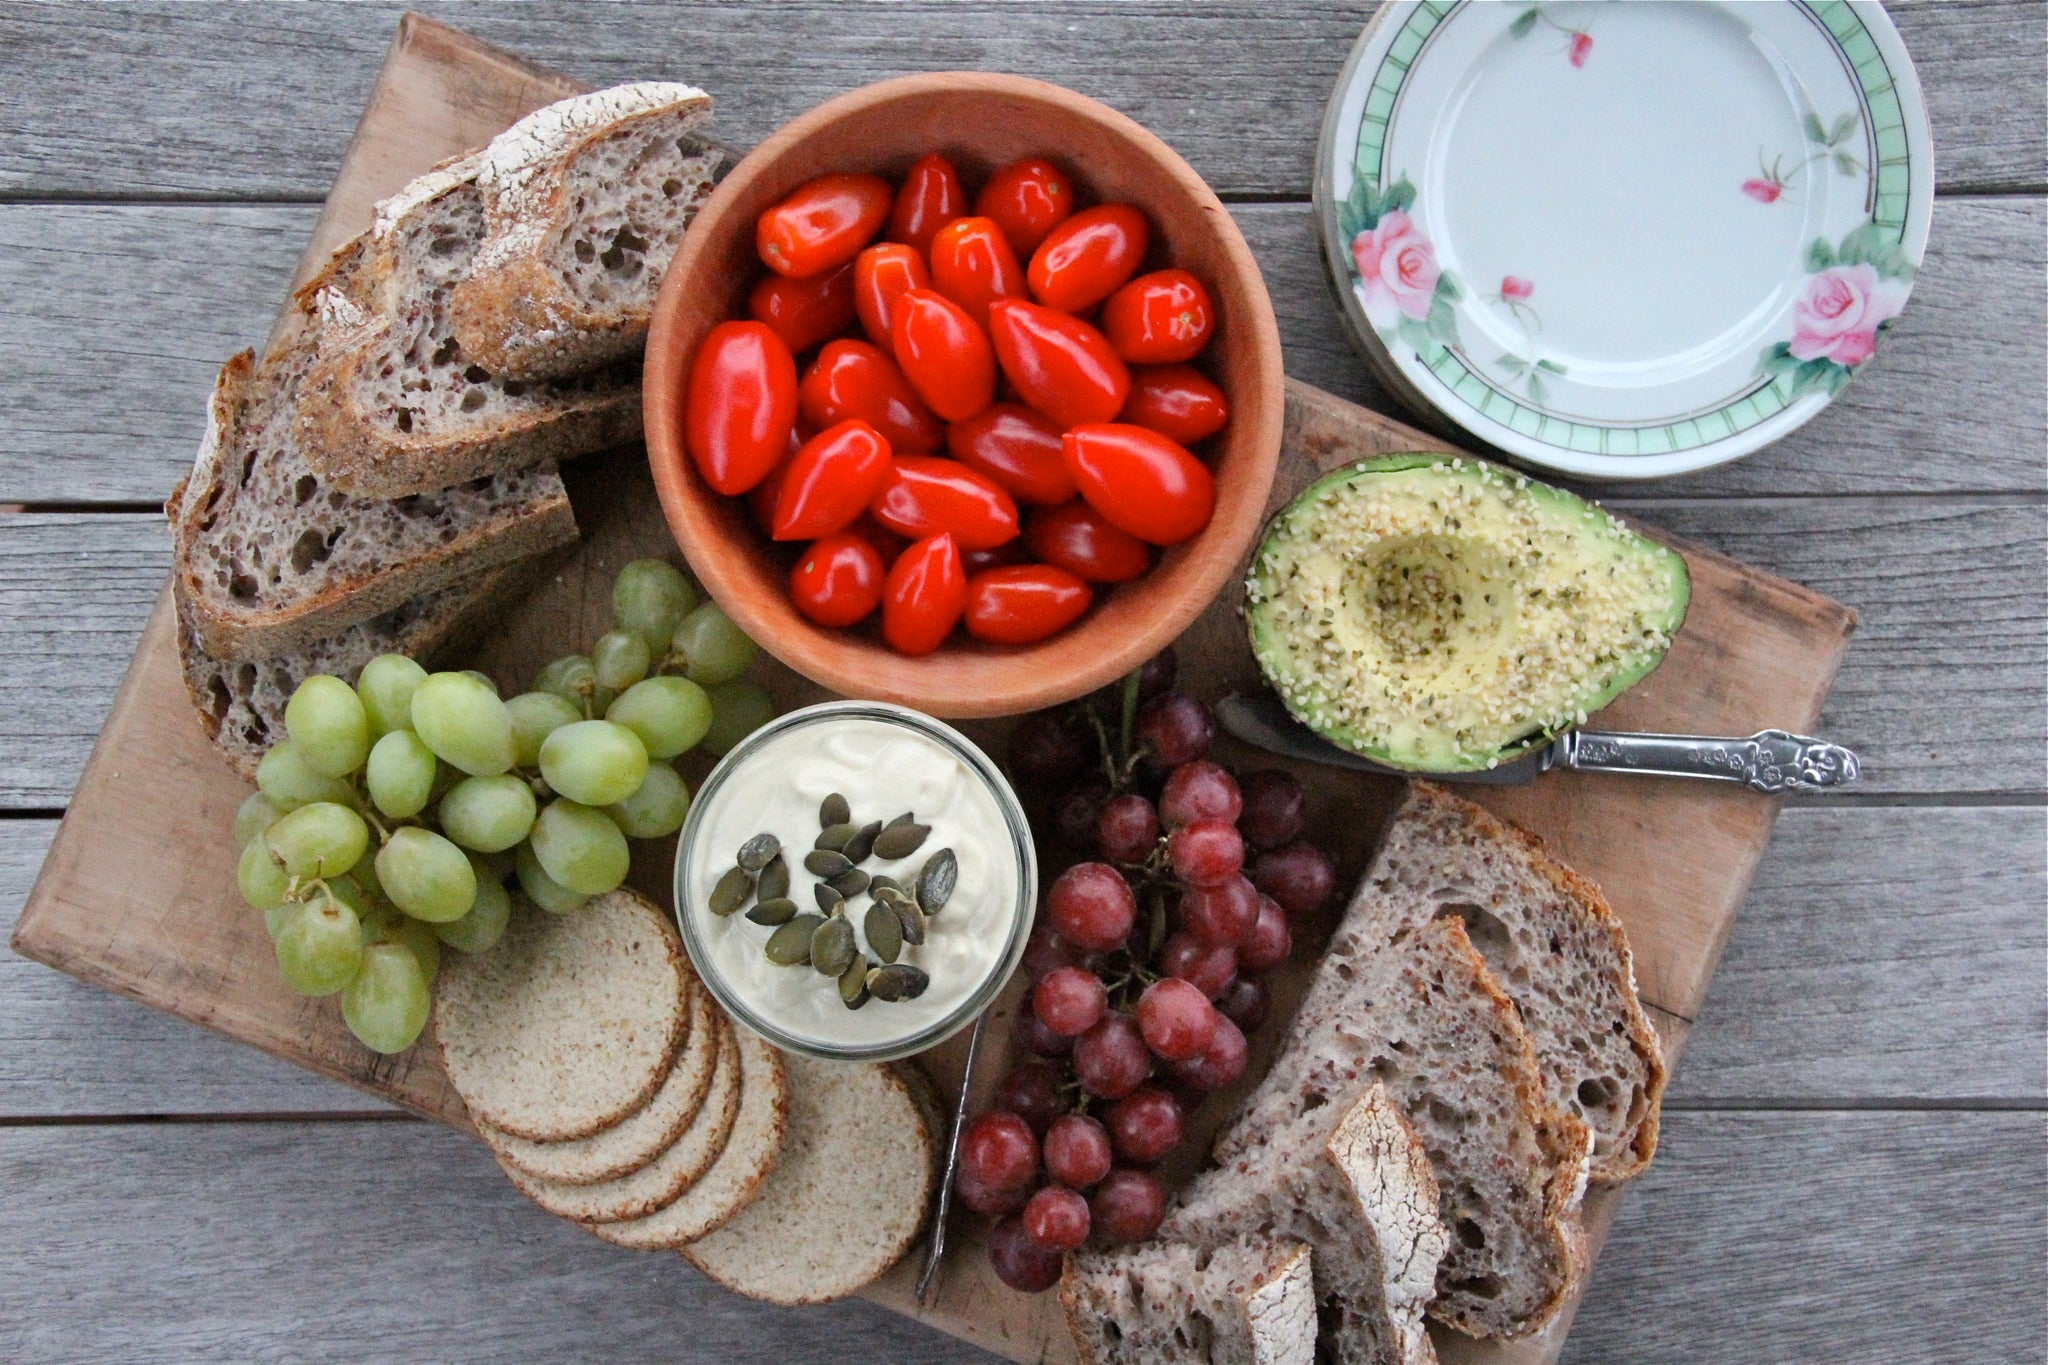 Creamy Raw Cashew Nut Cheese #healthy #vegan #recipe #dairyfree #sugarfree #glutenfree #begoodorganics #platter